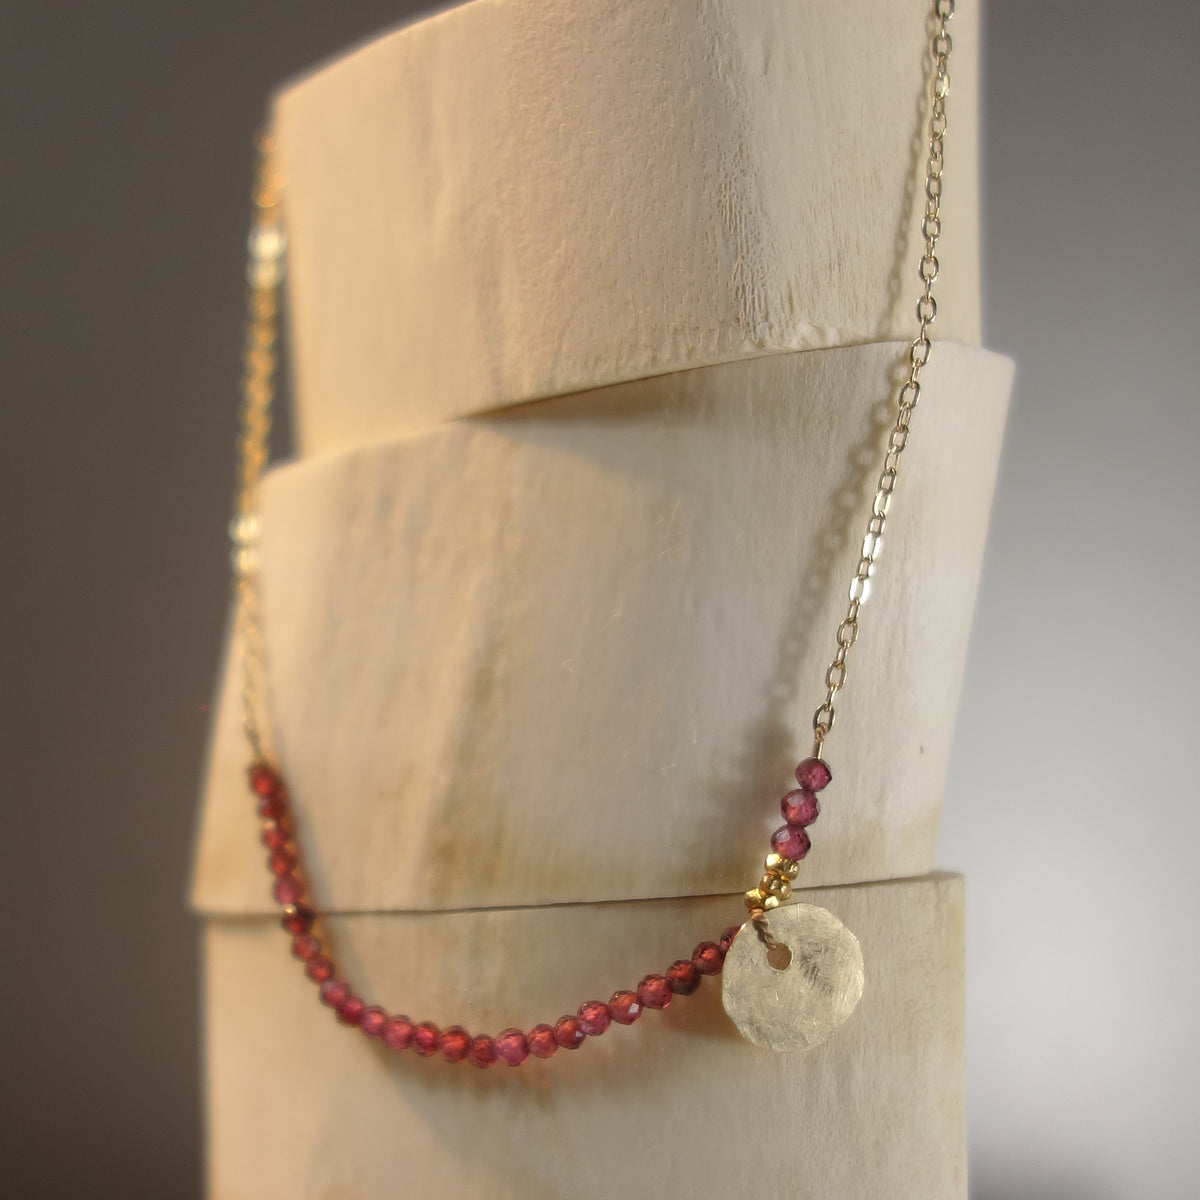 She Spoke Without Words (garnet and gold necklace)